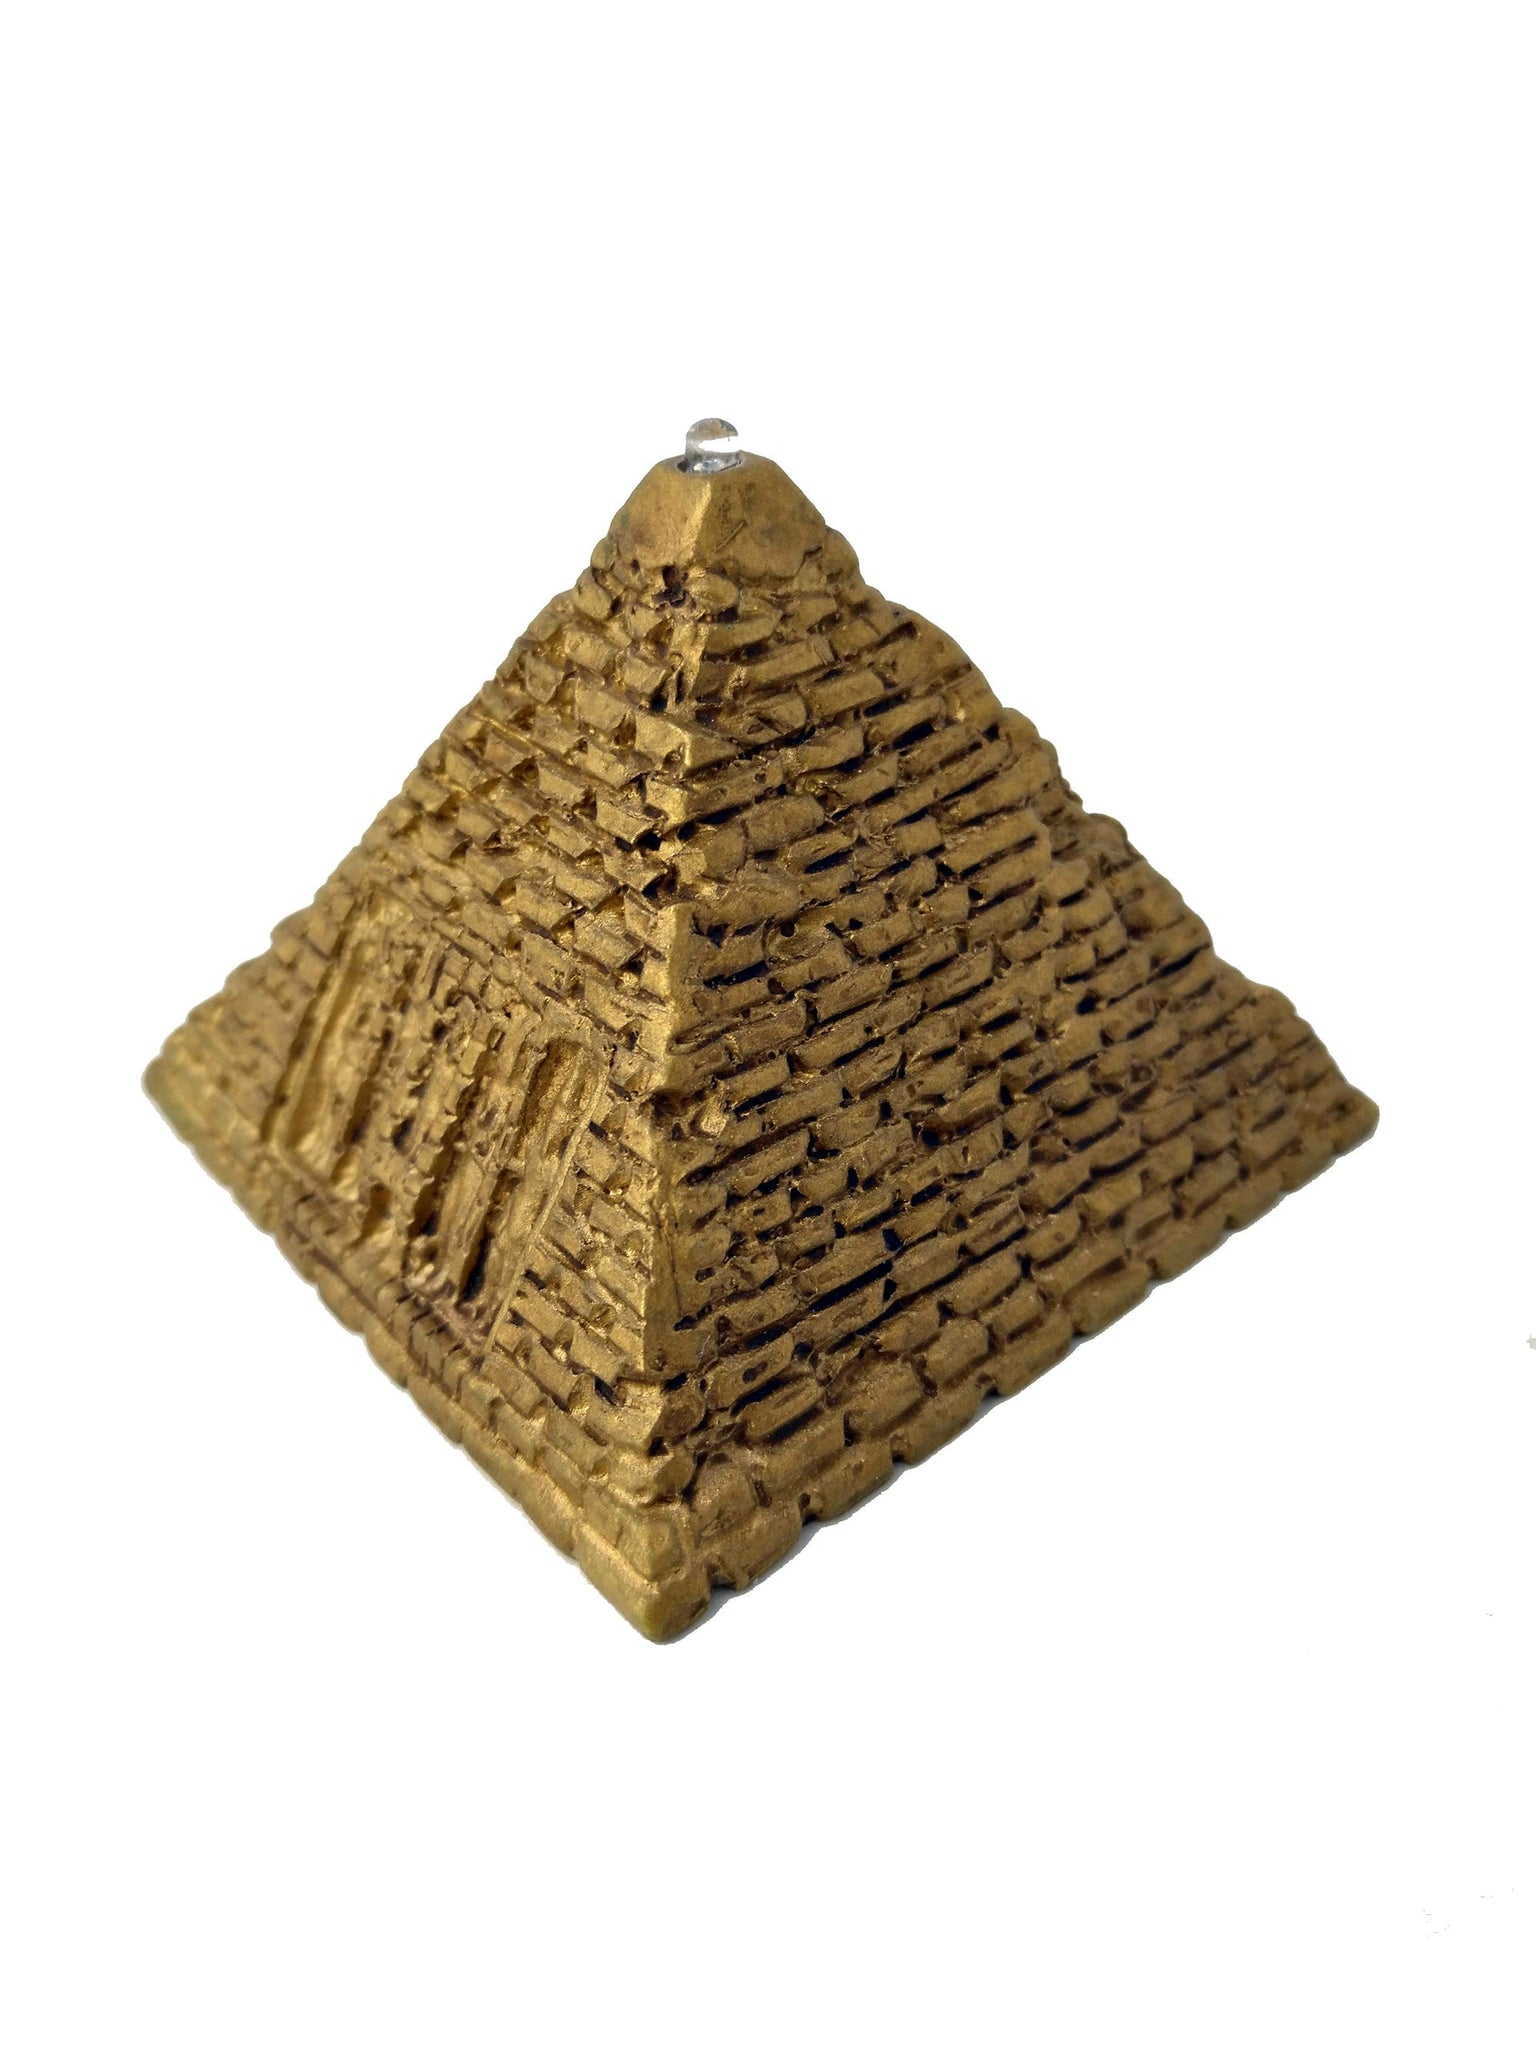 Small LED Egyptian Pyramid Light - Hand-Painted Egyptian pyramid with LED Light - 2 inches - 5cm